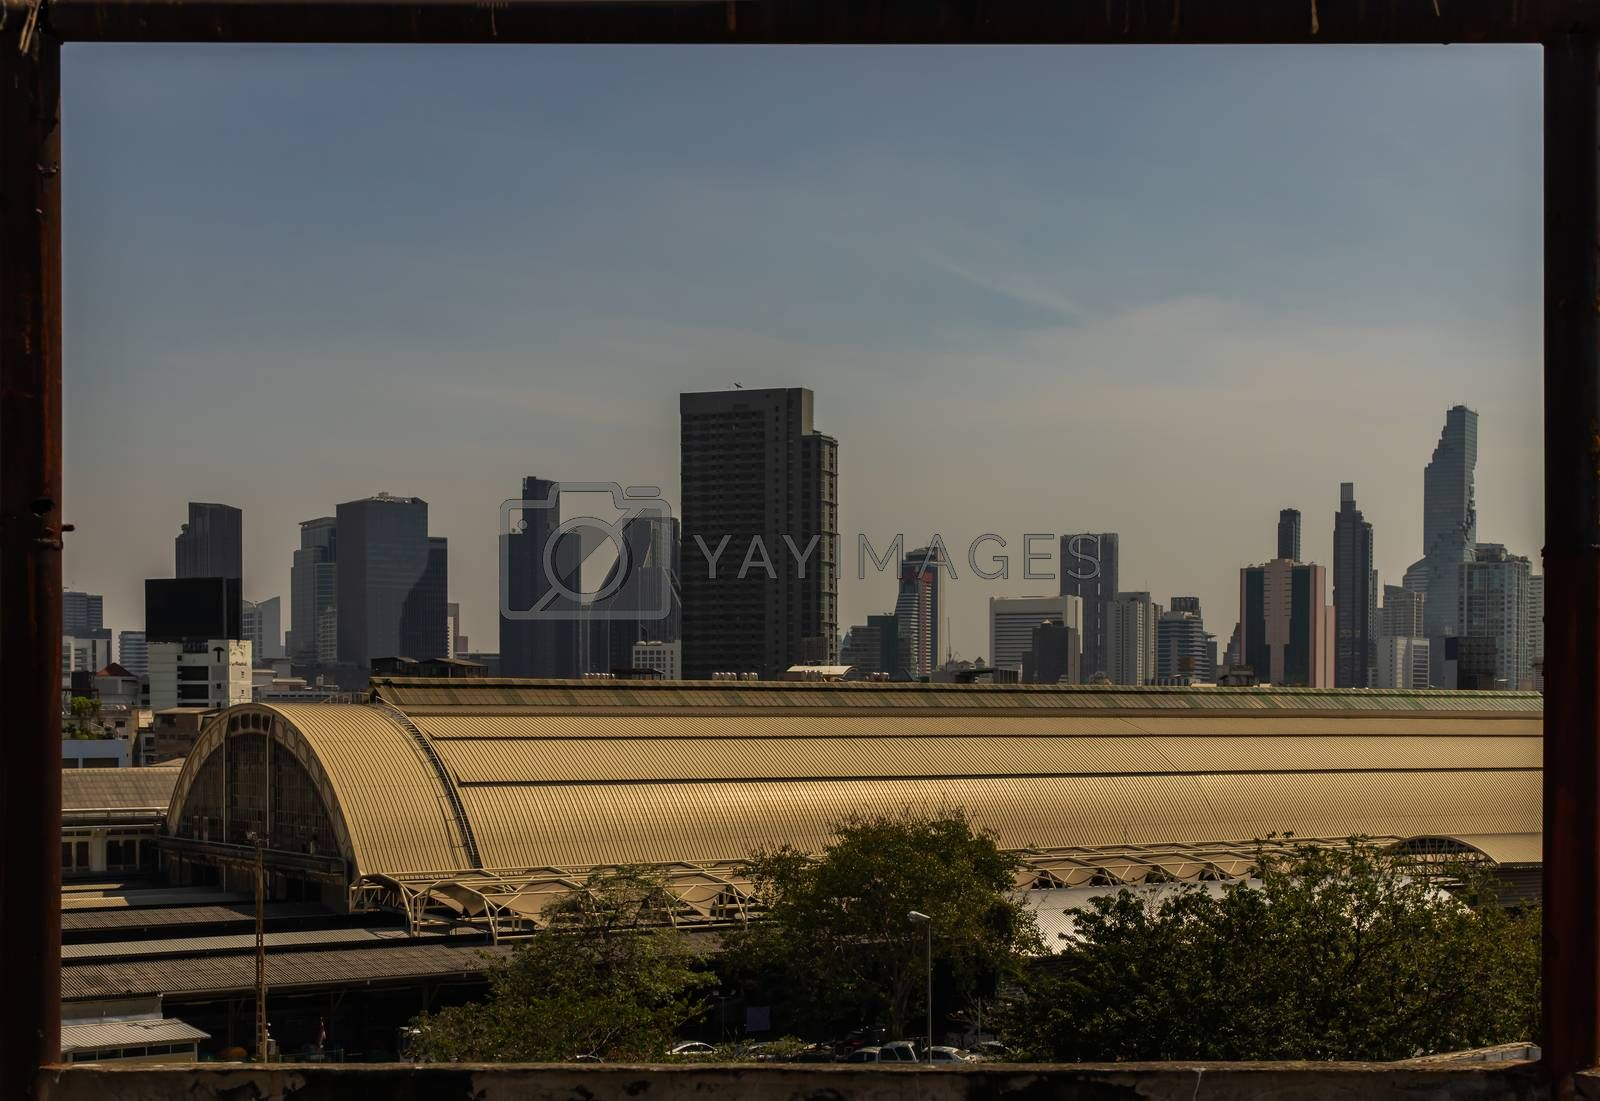 Roof of Hua Lamphong Station And the sky background of Bangkok. Looks through the Steel frame in abandoned building. No focus, specifically.